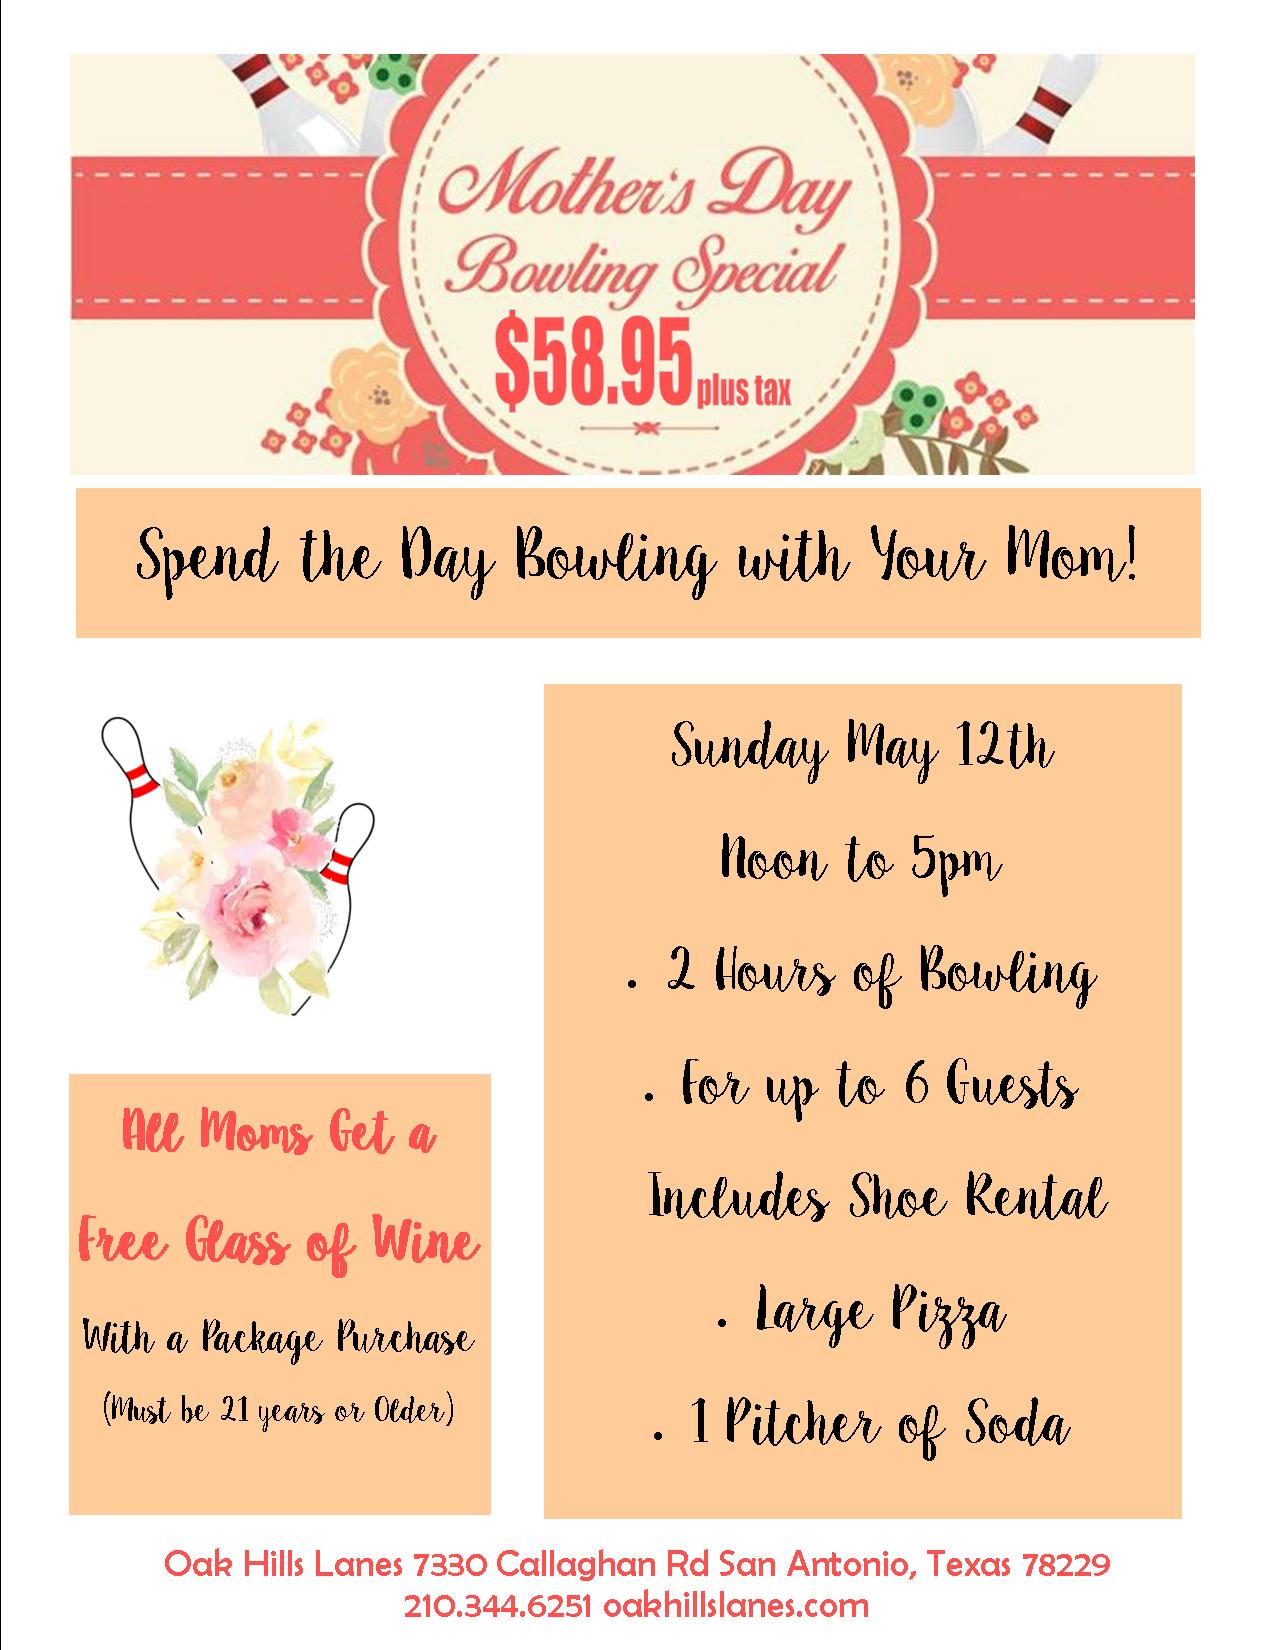 Mother's Day Bowling Special